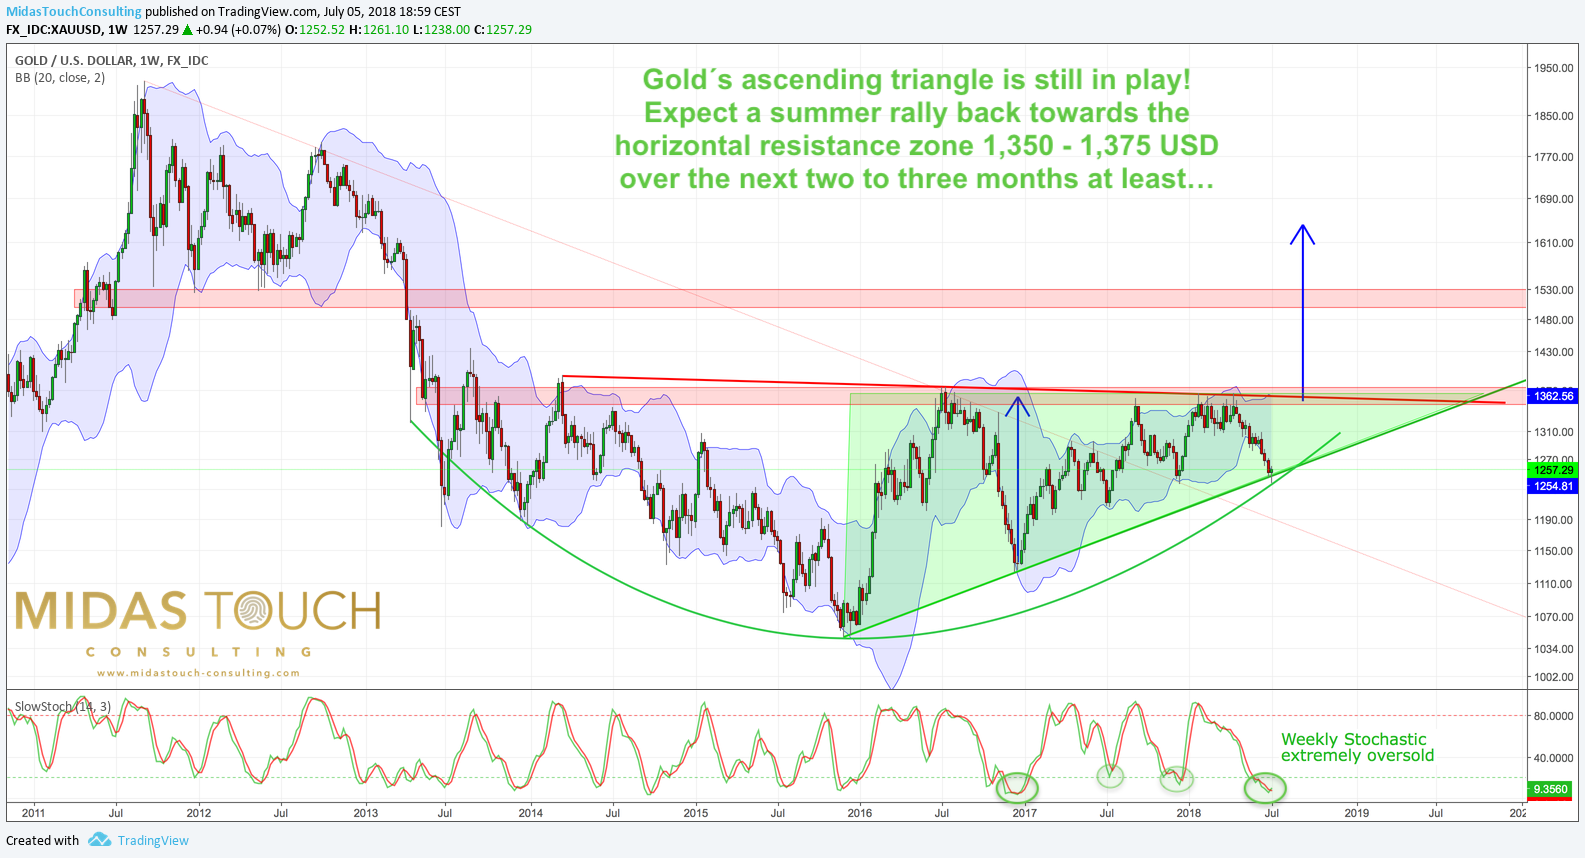 Gold weekly chart from 5th of July 2018. Ascending triangle still in play.